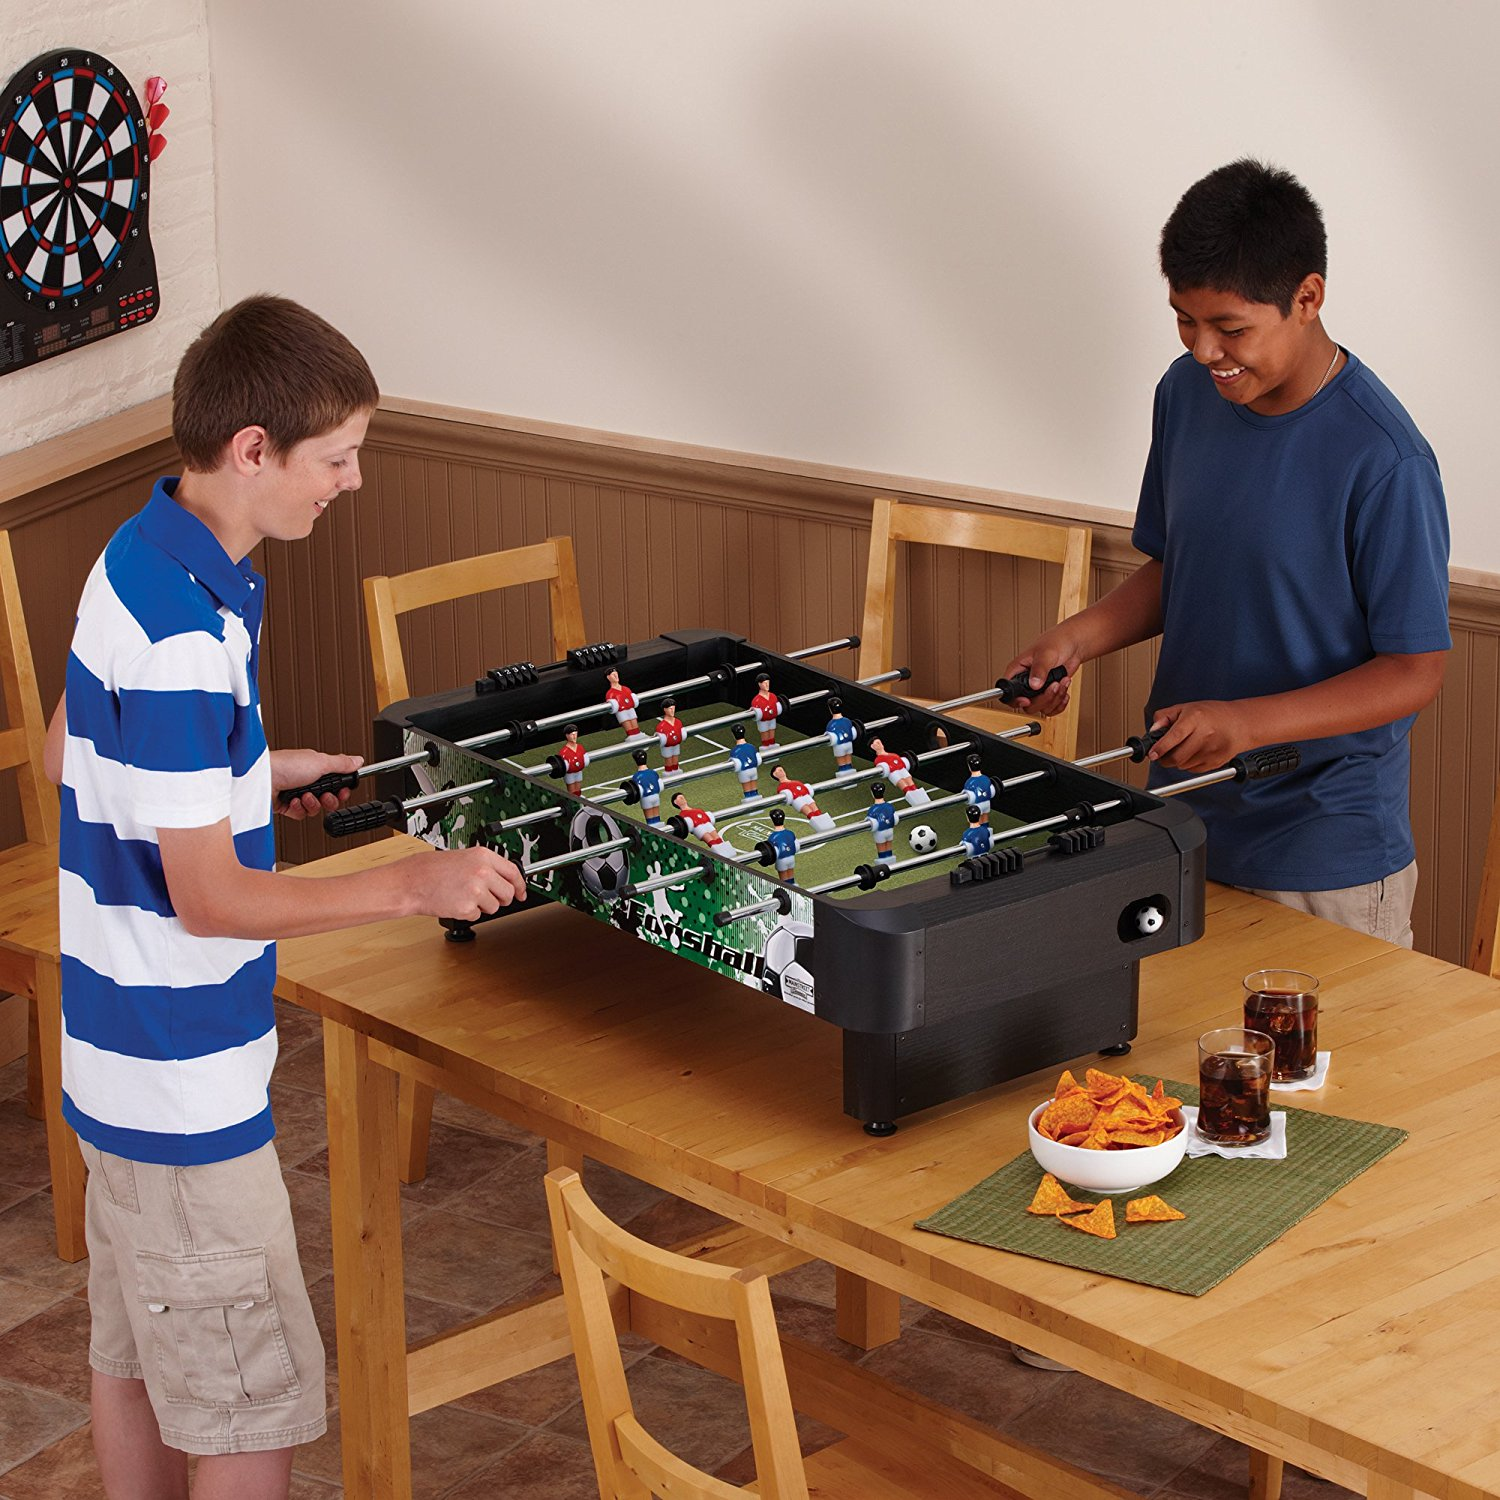 The Best Mini Foosball Table For The Money